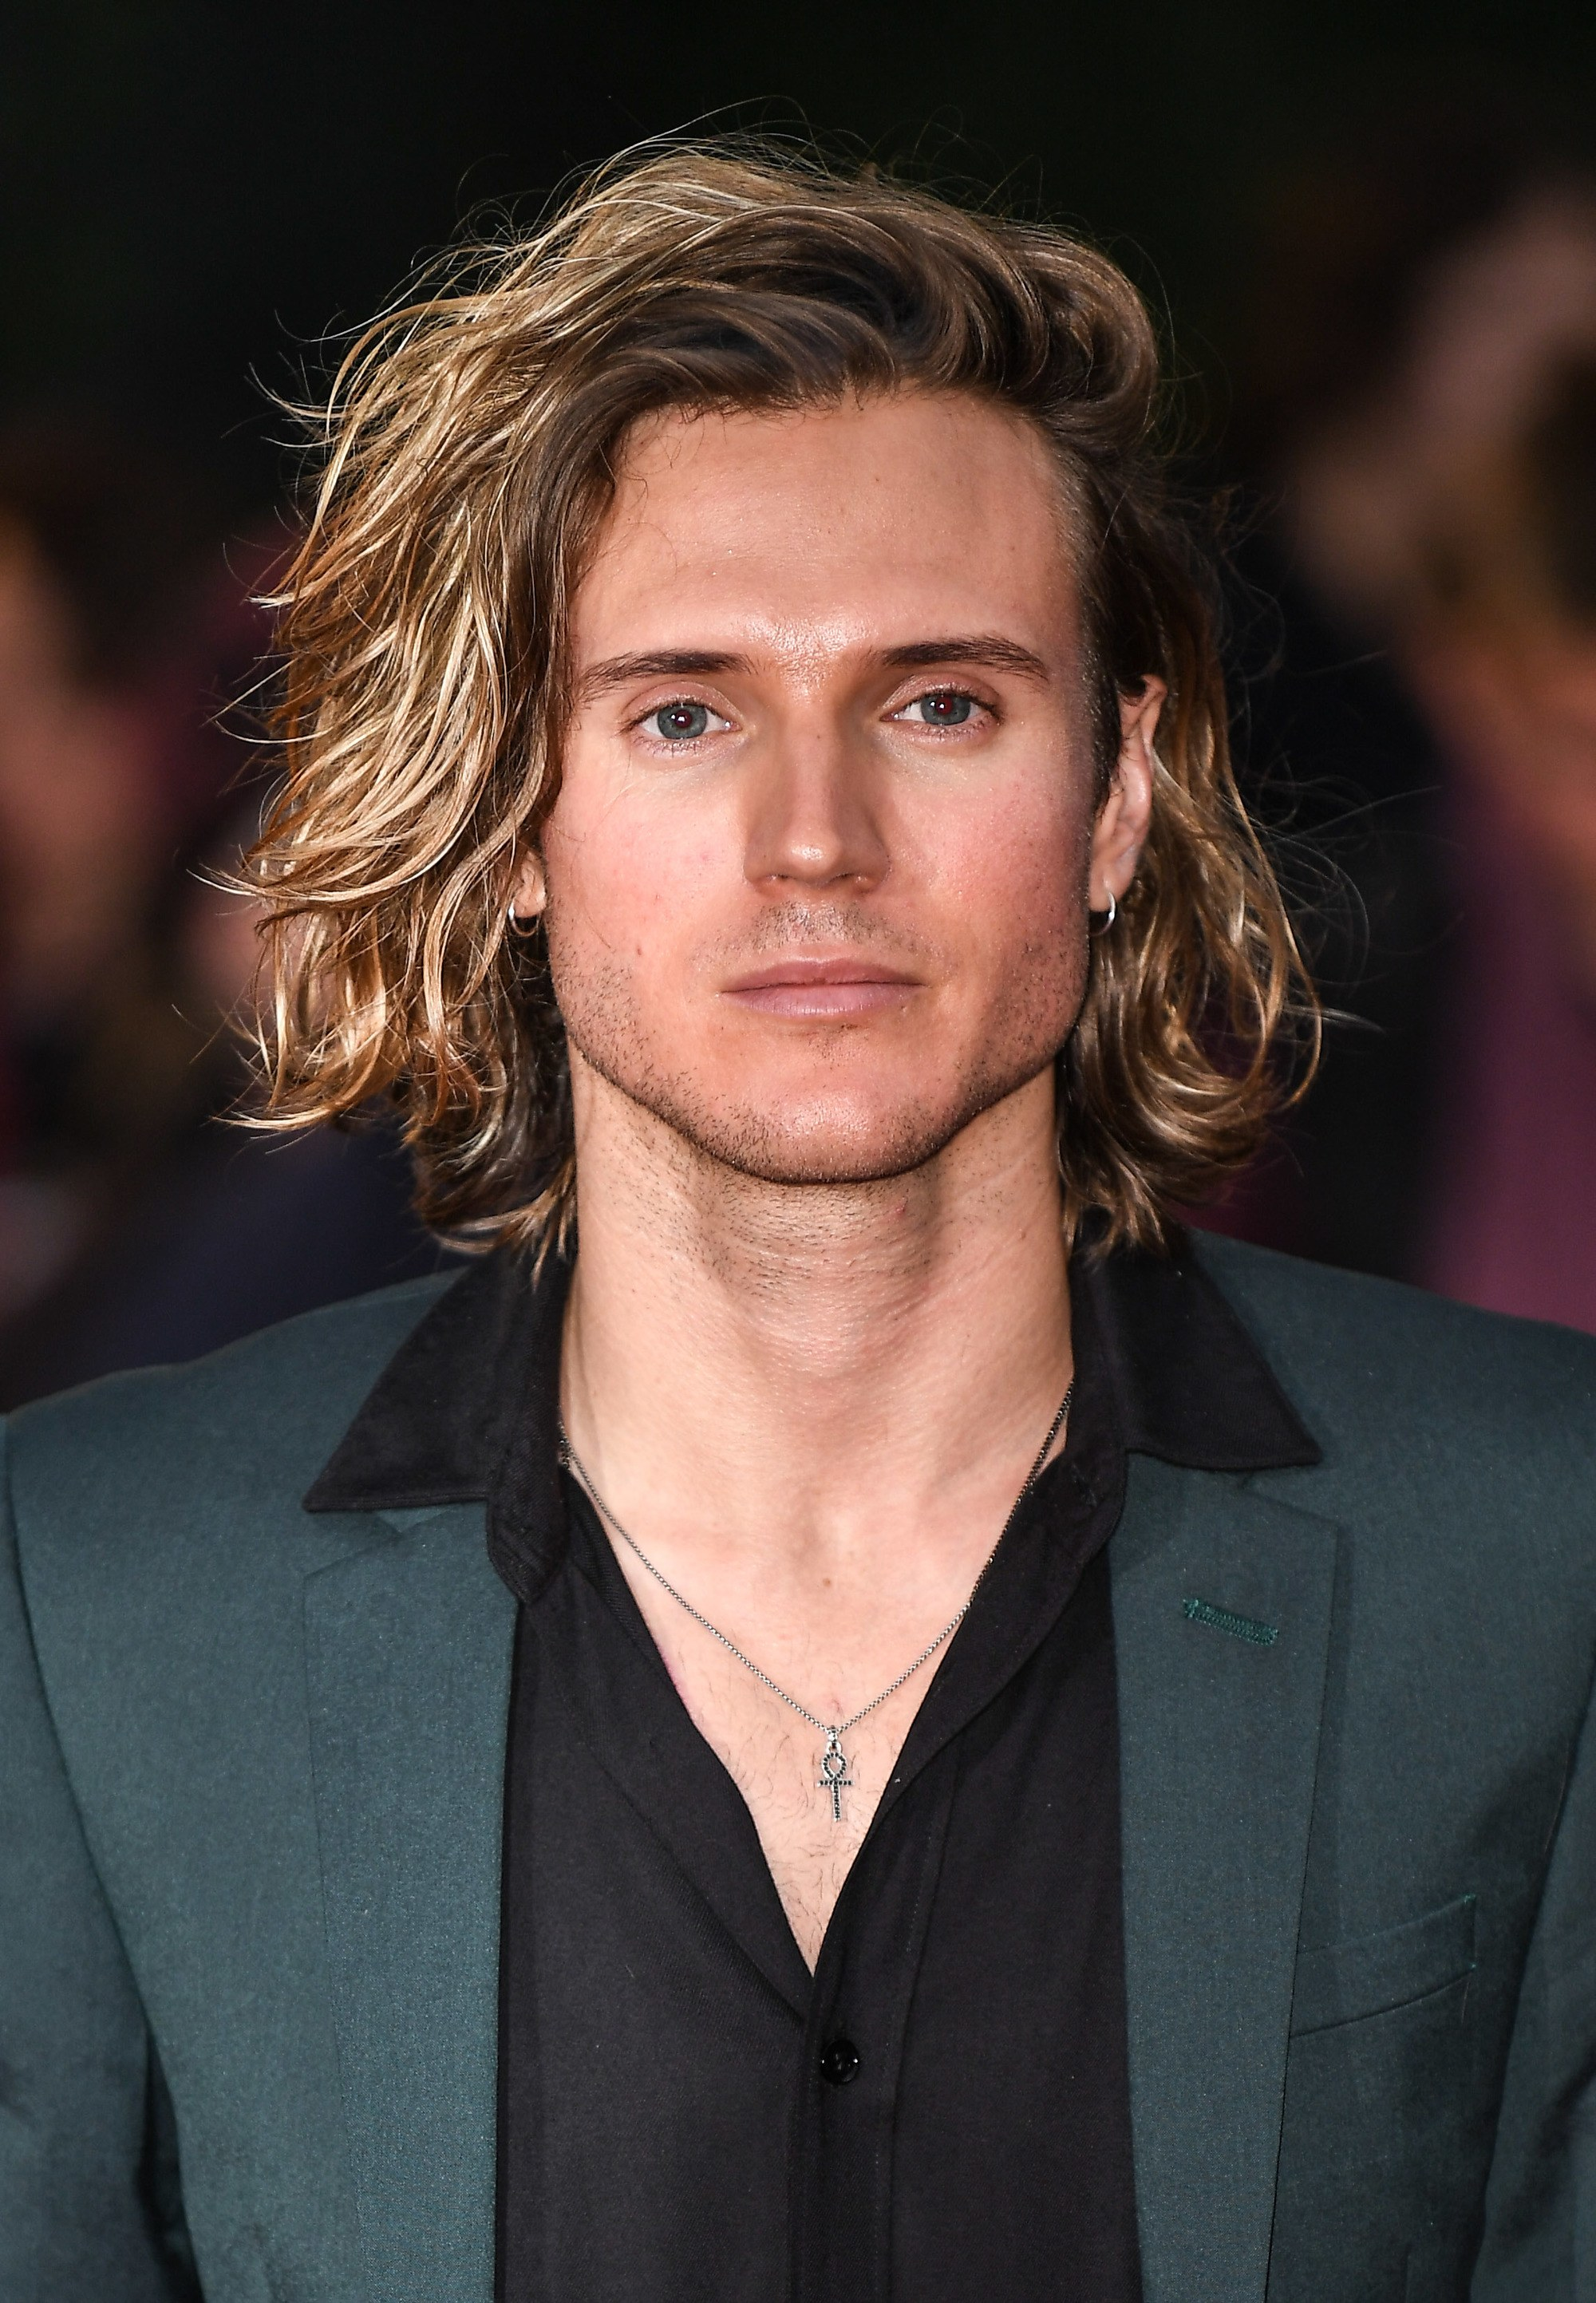 mcfly's dougie poynter on the red carpet with blonde medium length hair swept over to one side